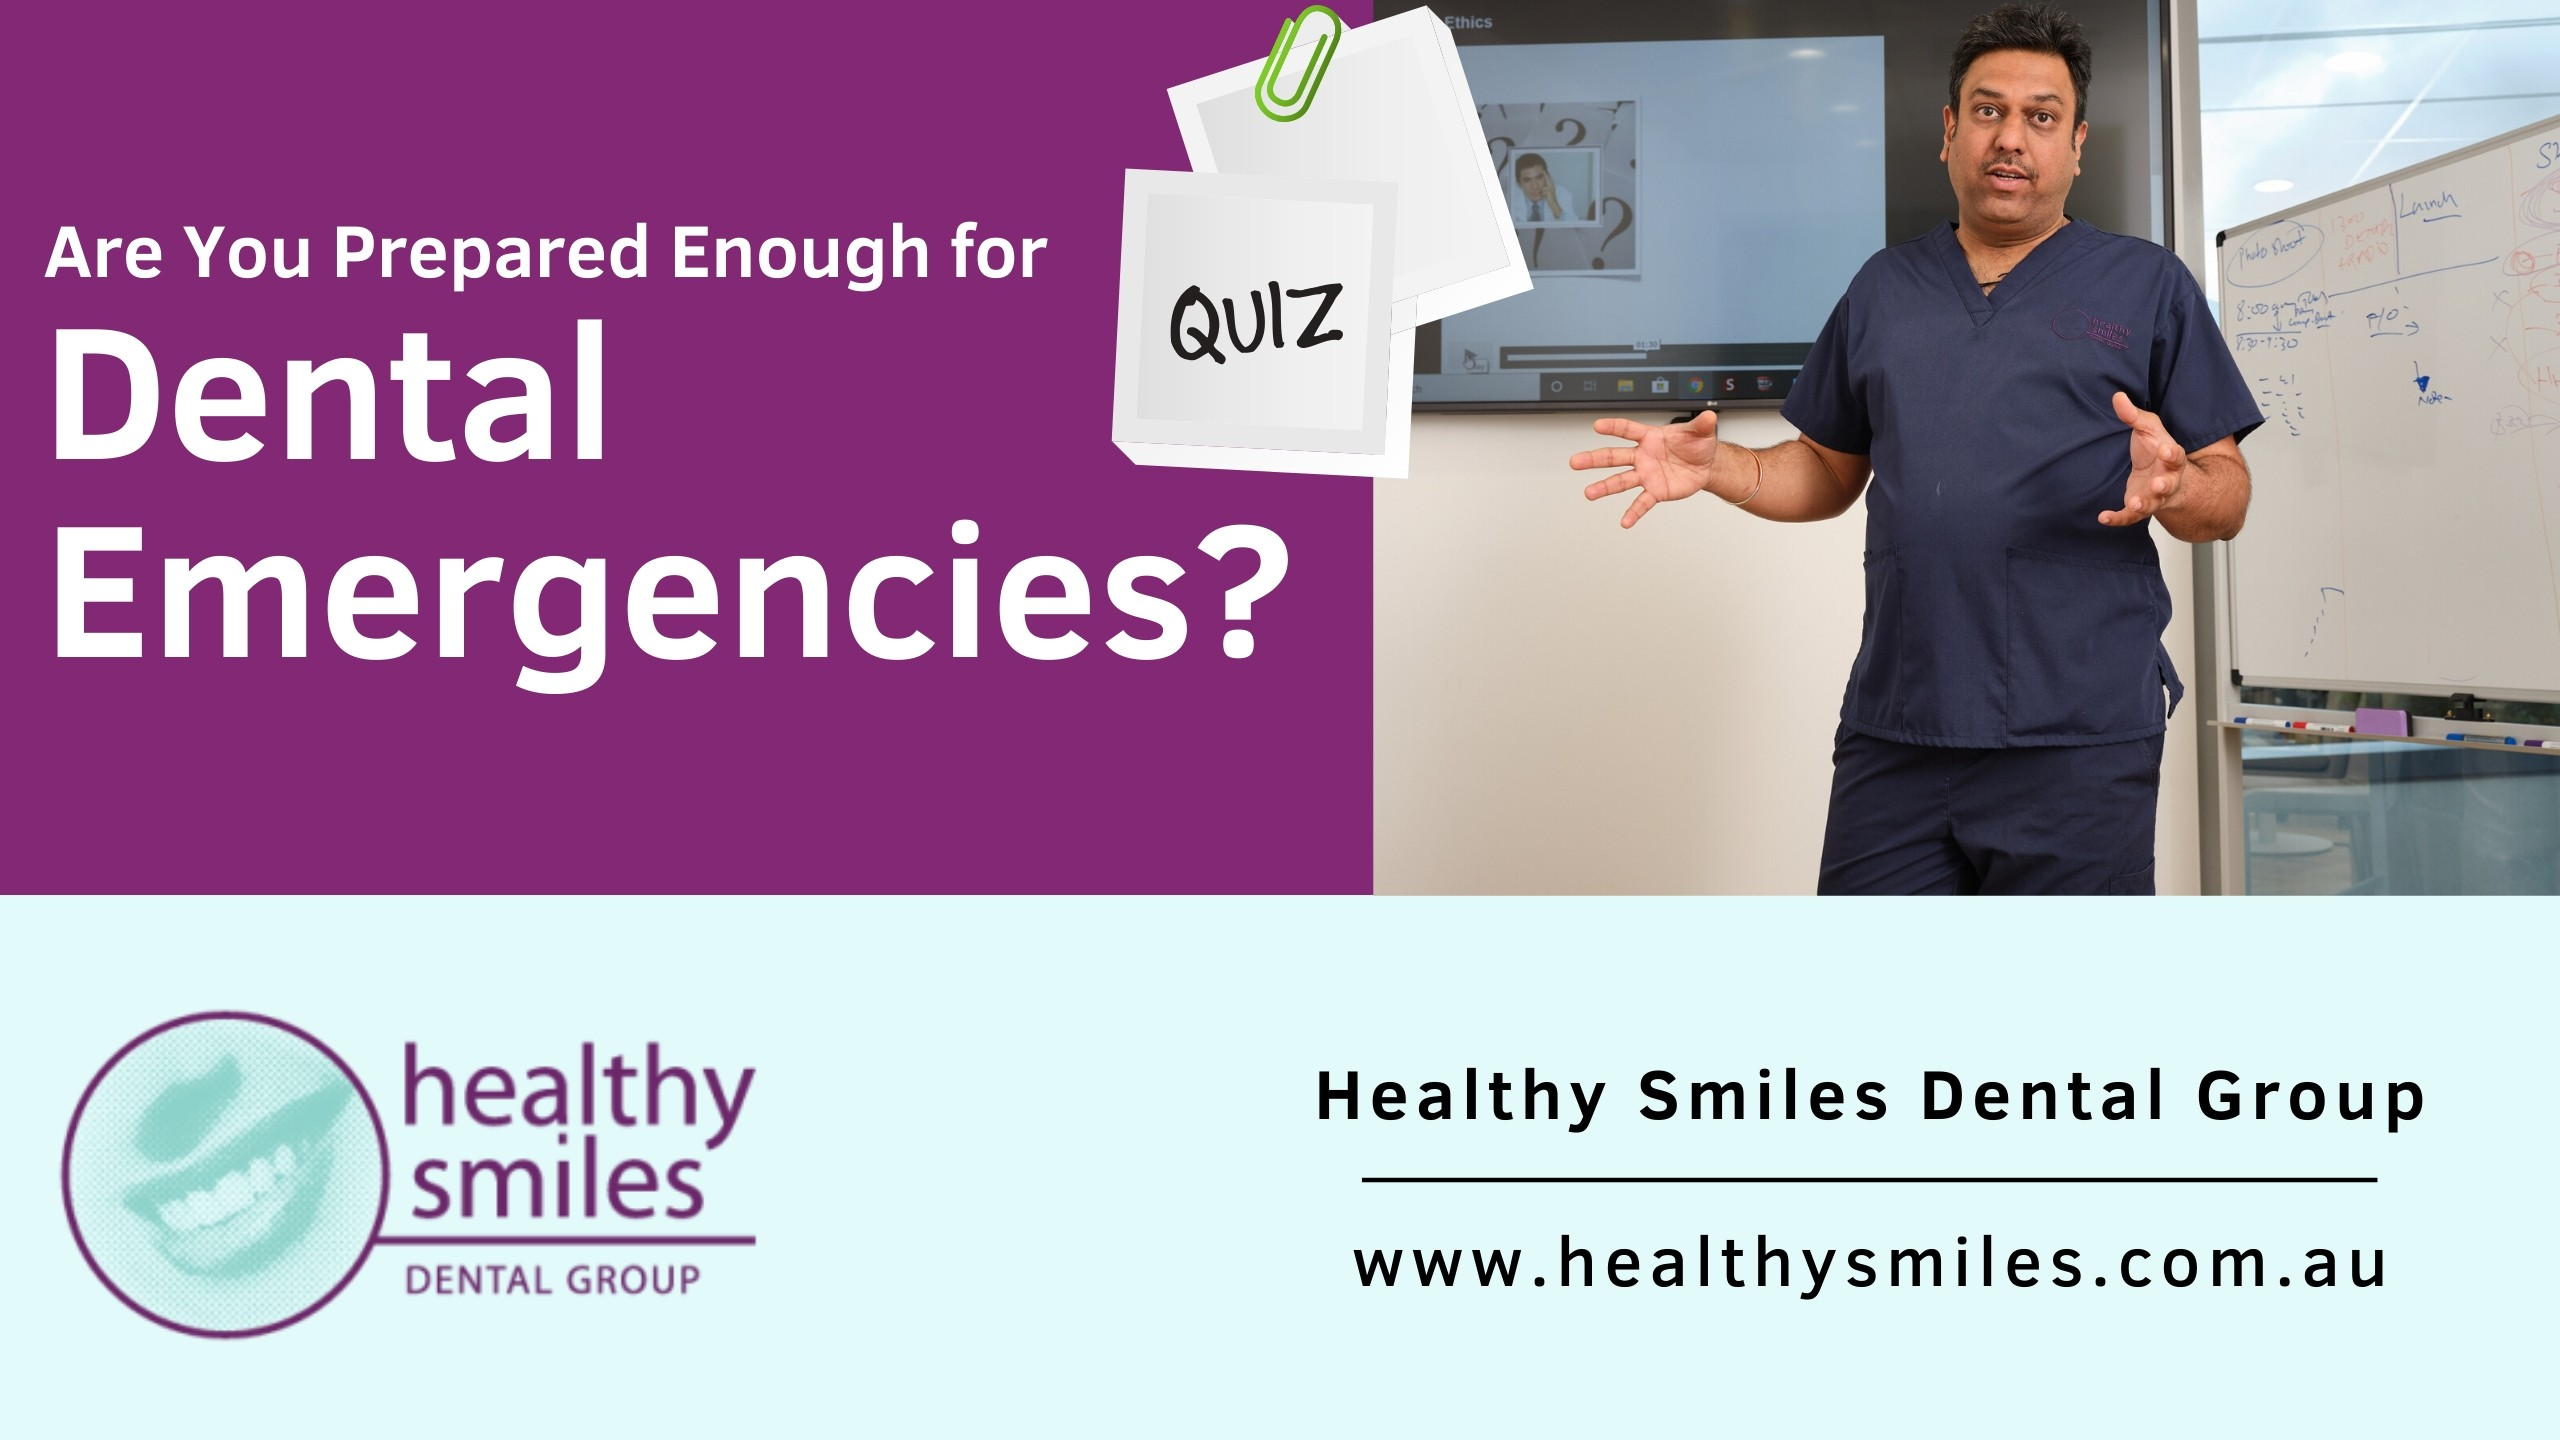 Are You Prepared Enough for Dental Emergencies